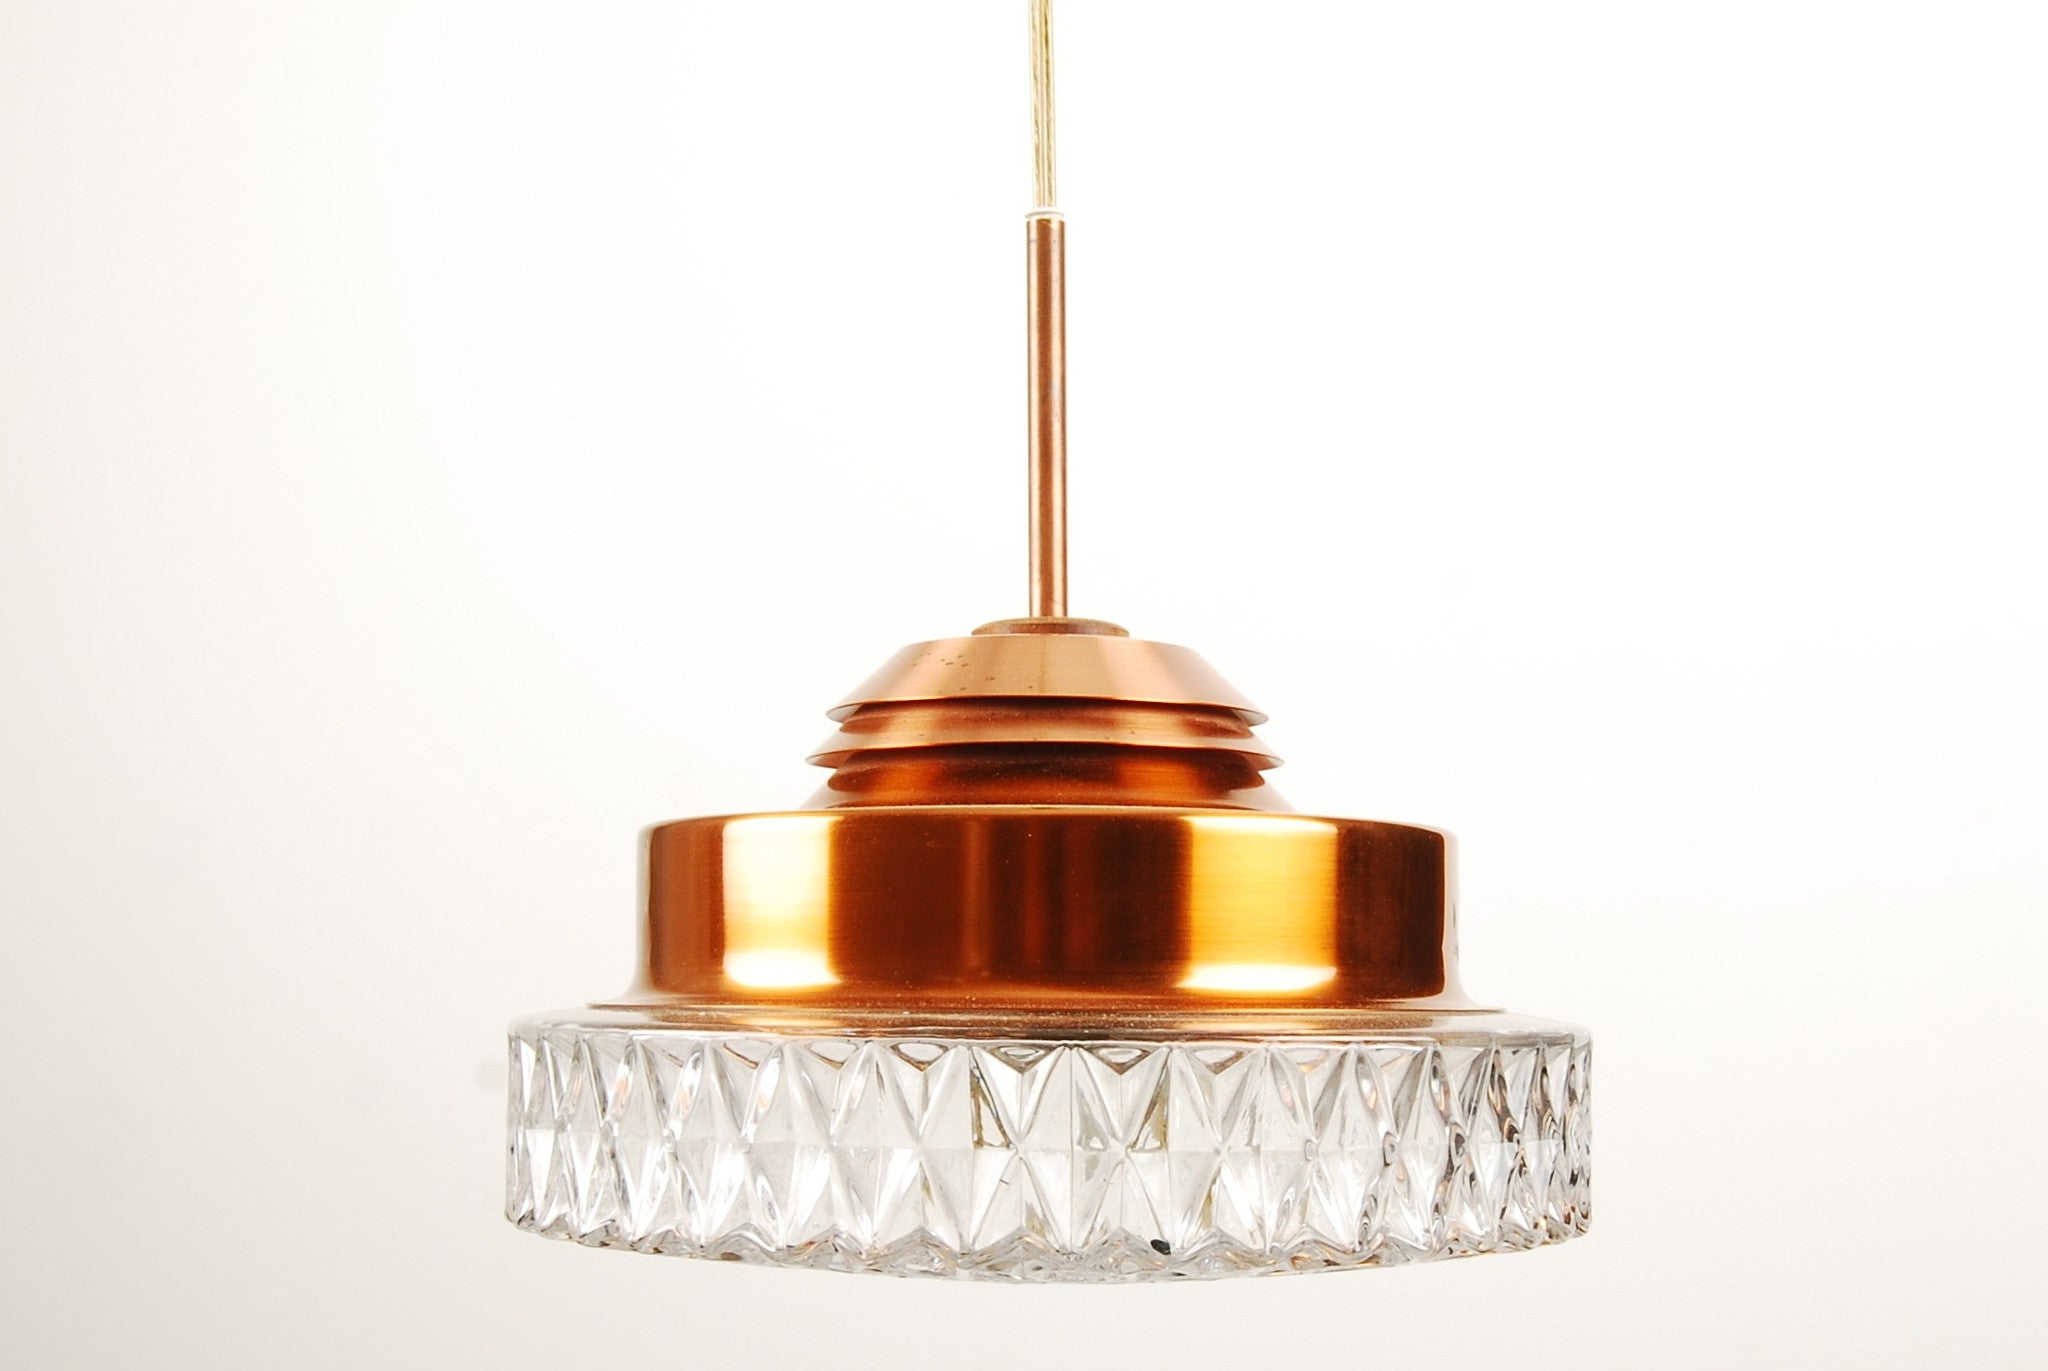 Chase & Sorensen Copper and glass ceiling light